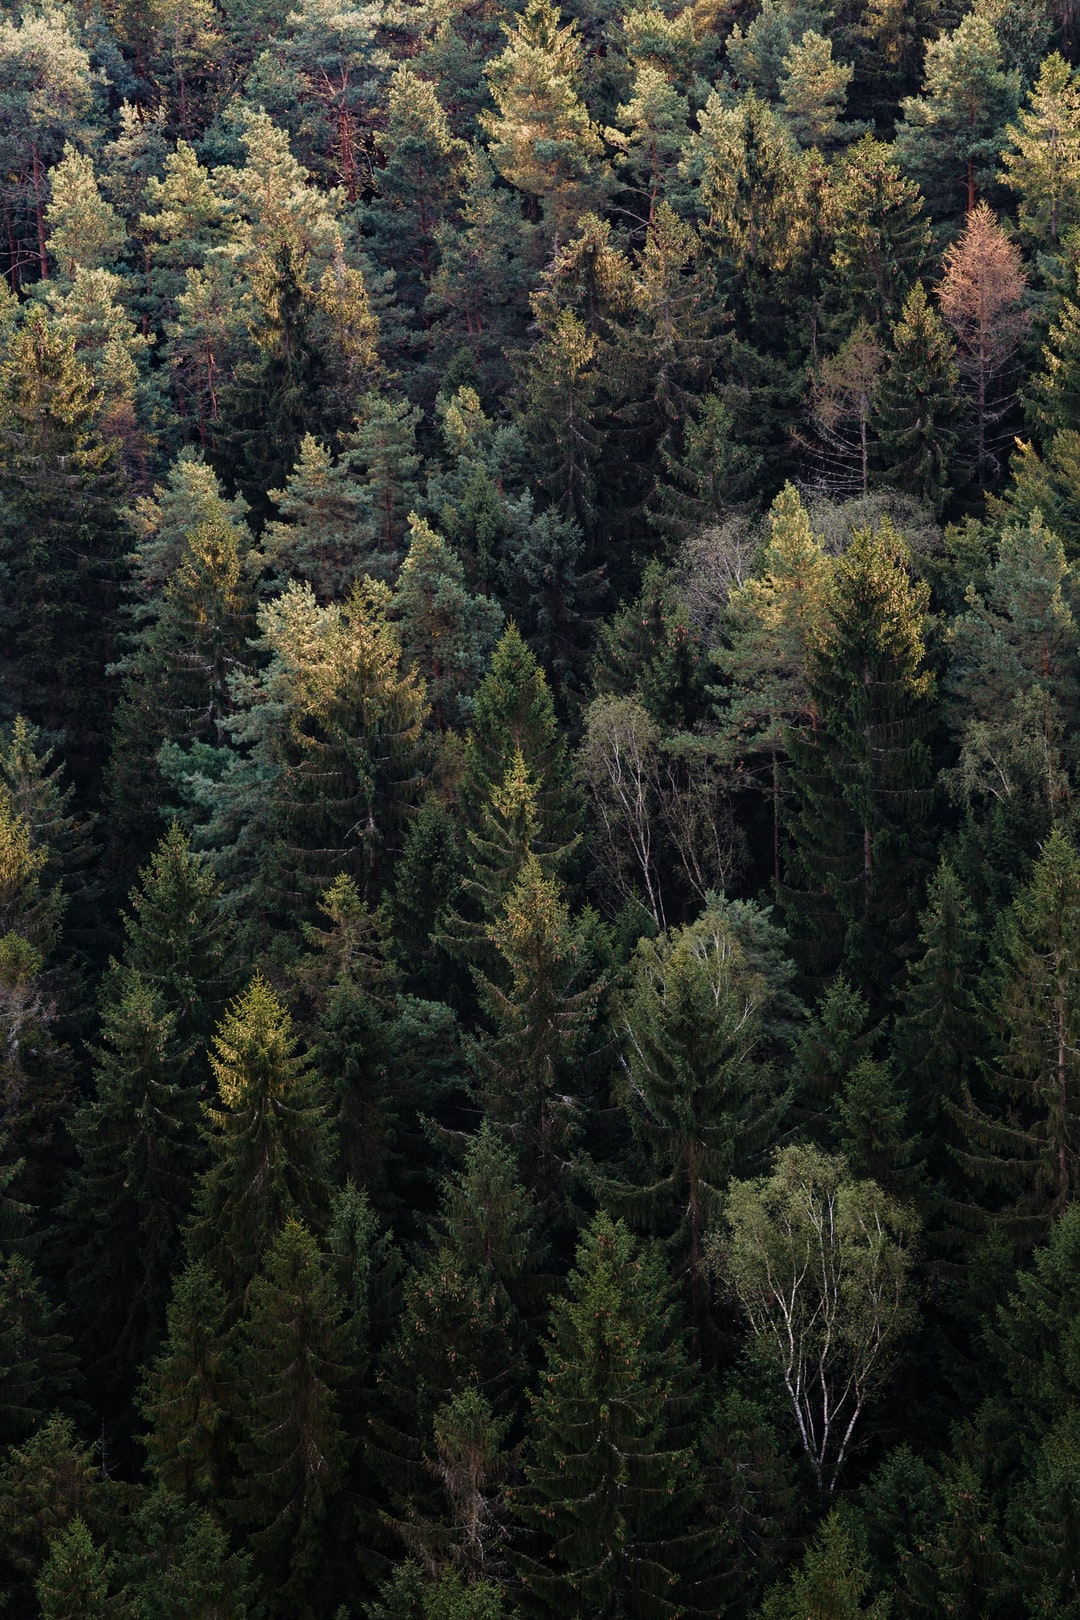 Mixed forest from above